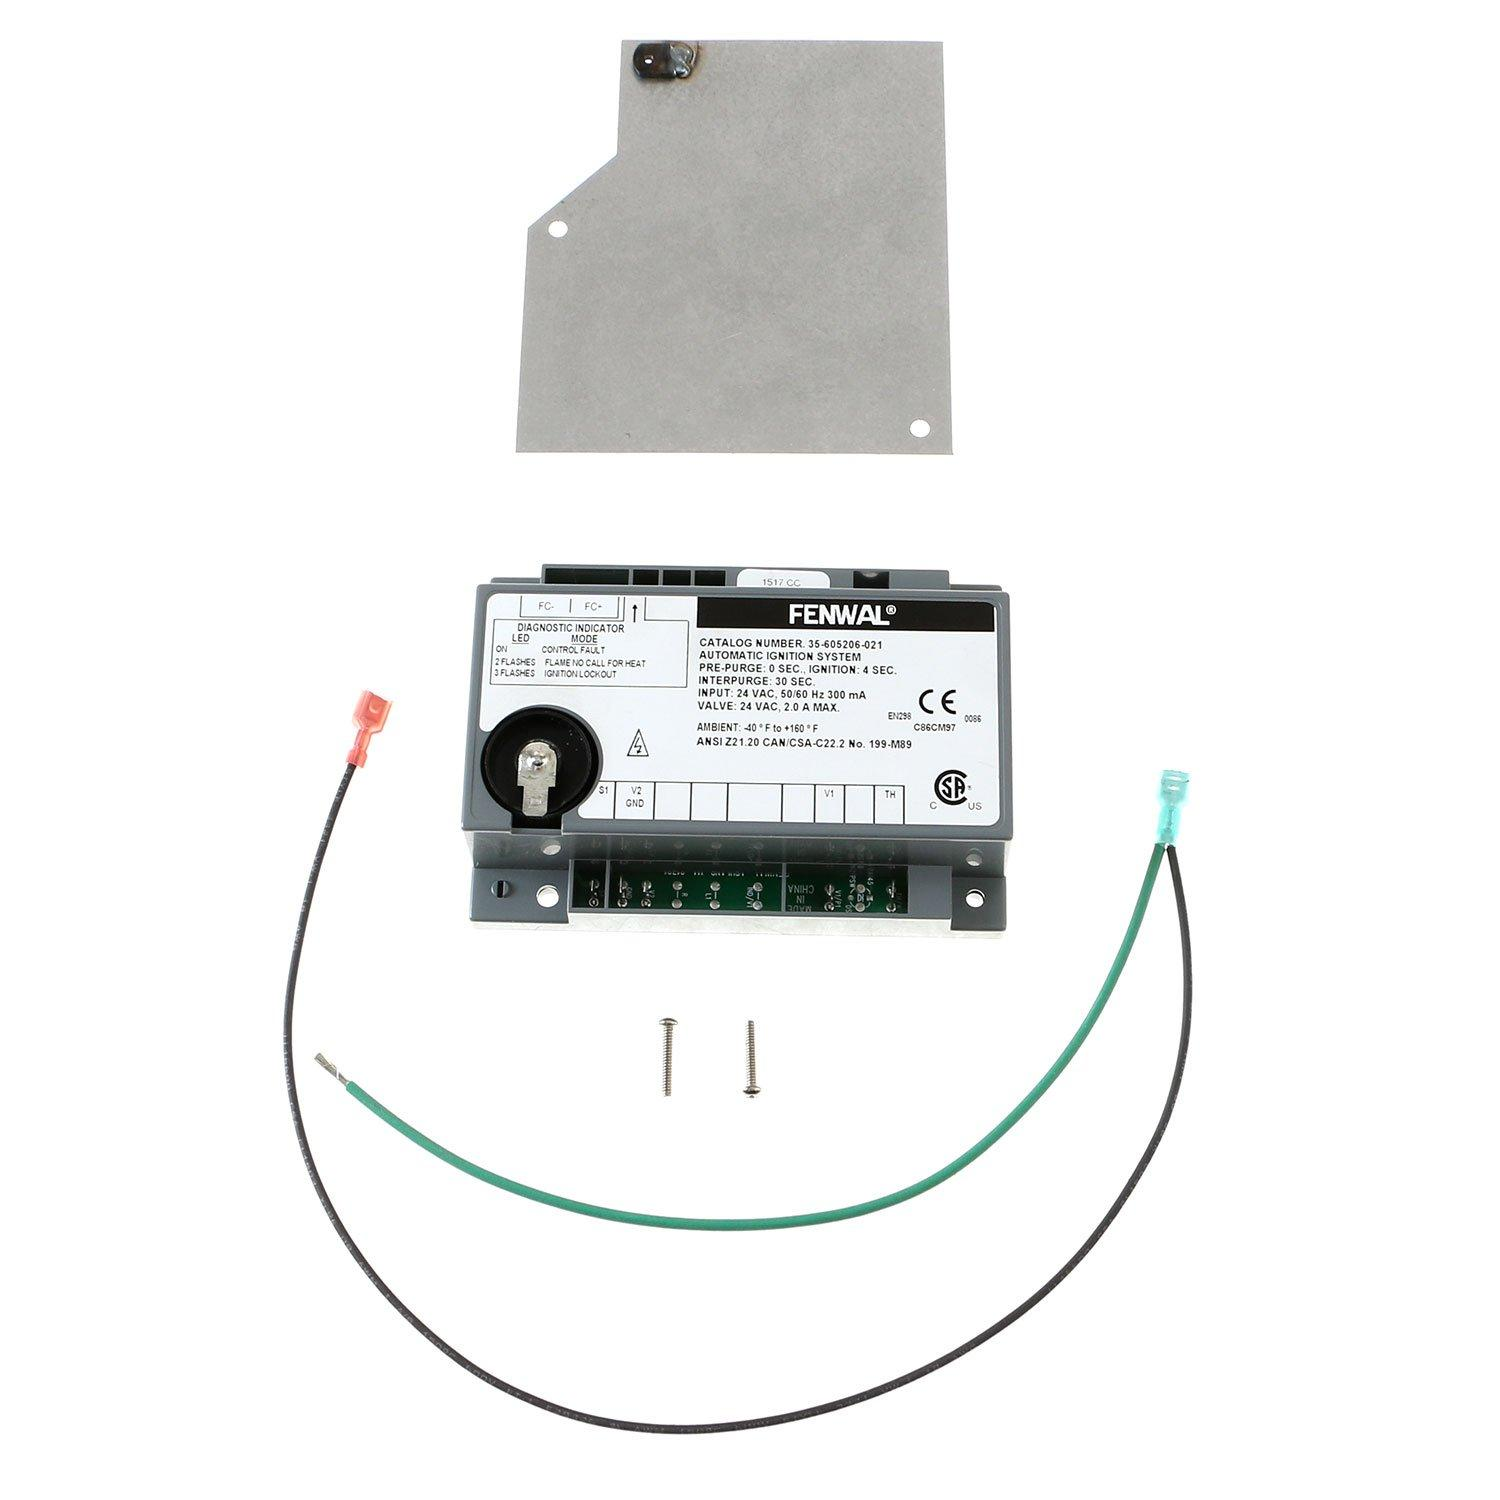 STAR IGNITION CONTROL KIT